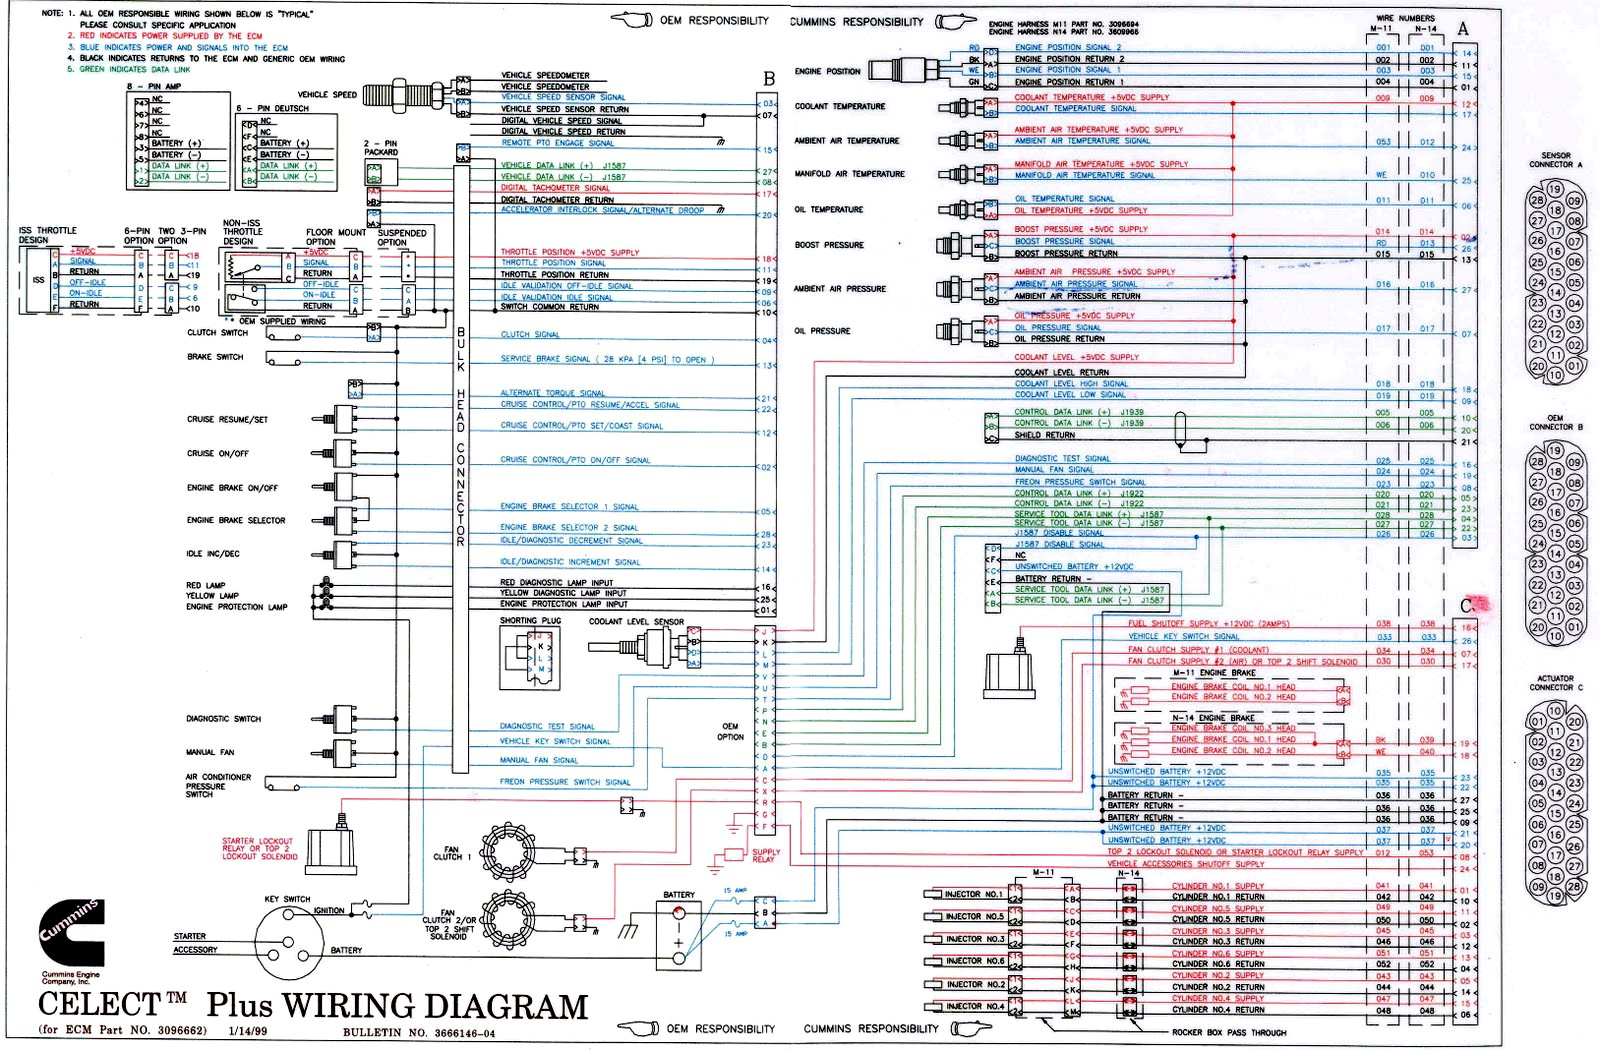 cat c12 ecm wiring diagram cat image wiring diagram cat 70 pin ecm wiring diagram solidfonts on cat c12 ecm wiring diagram